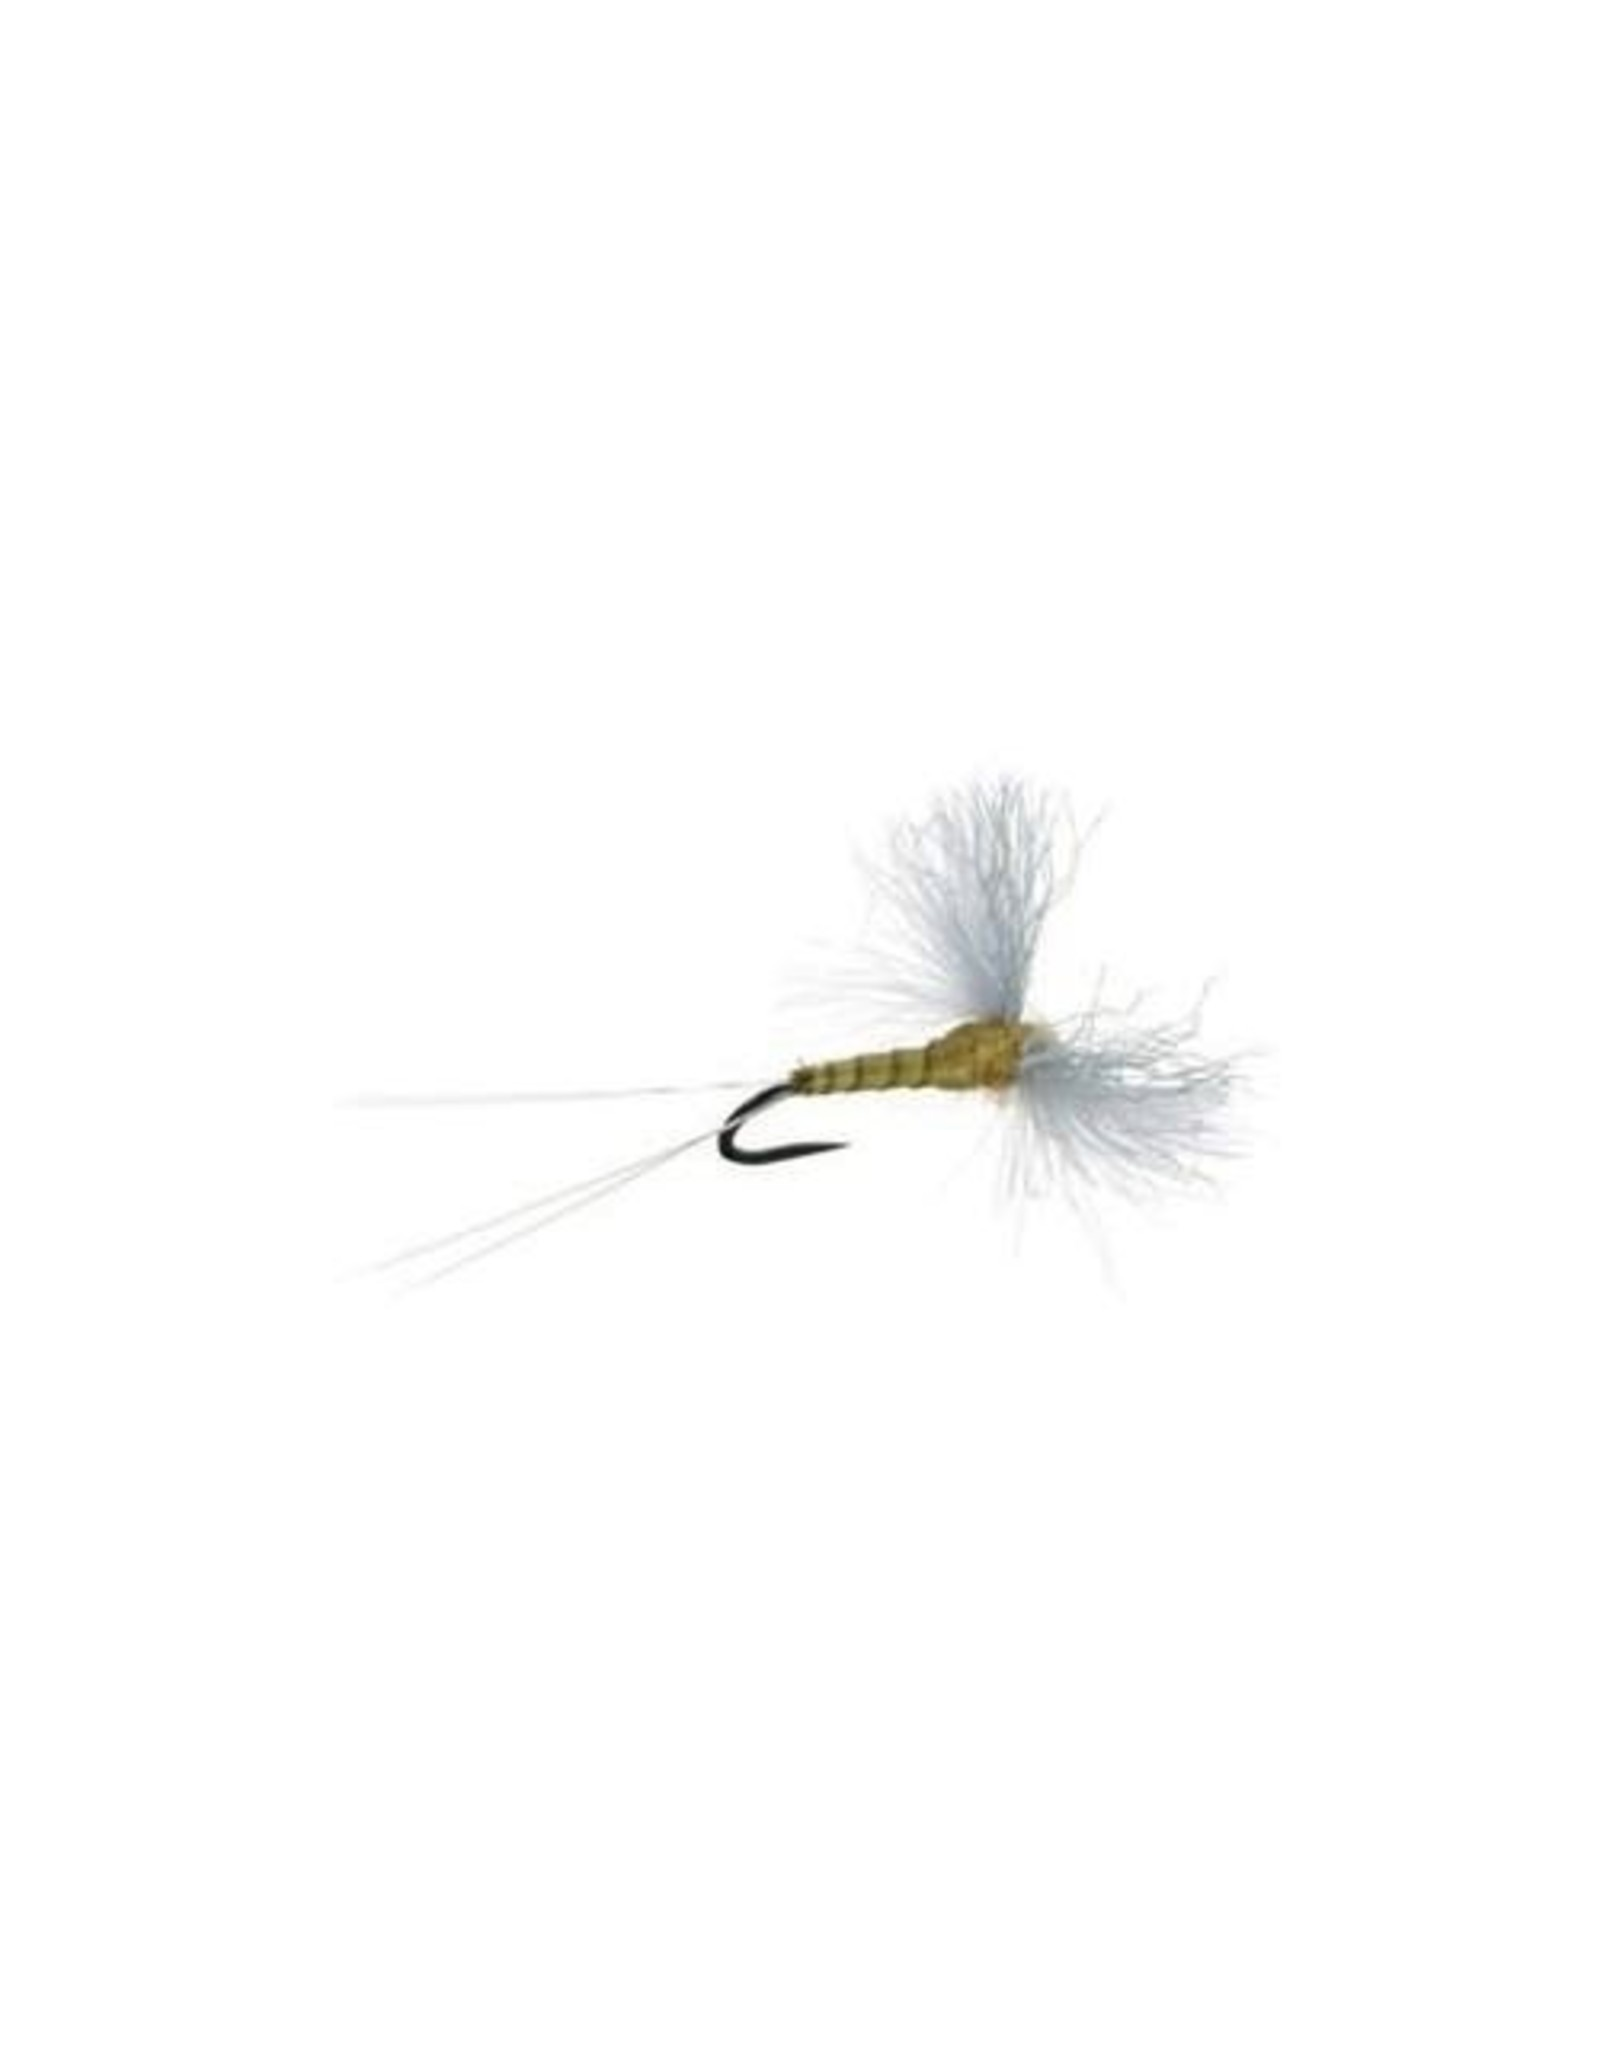 Umpqua Biot CDC Spinner (3 Pack)